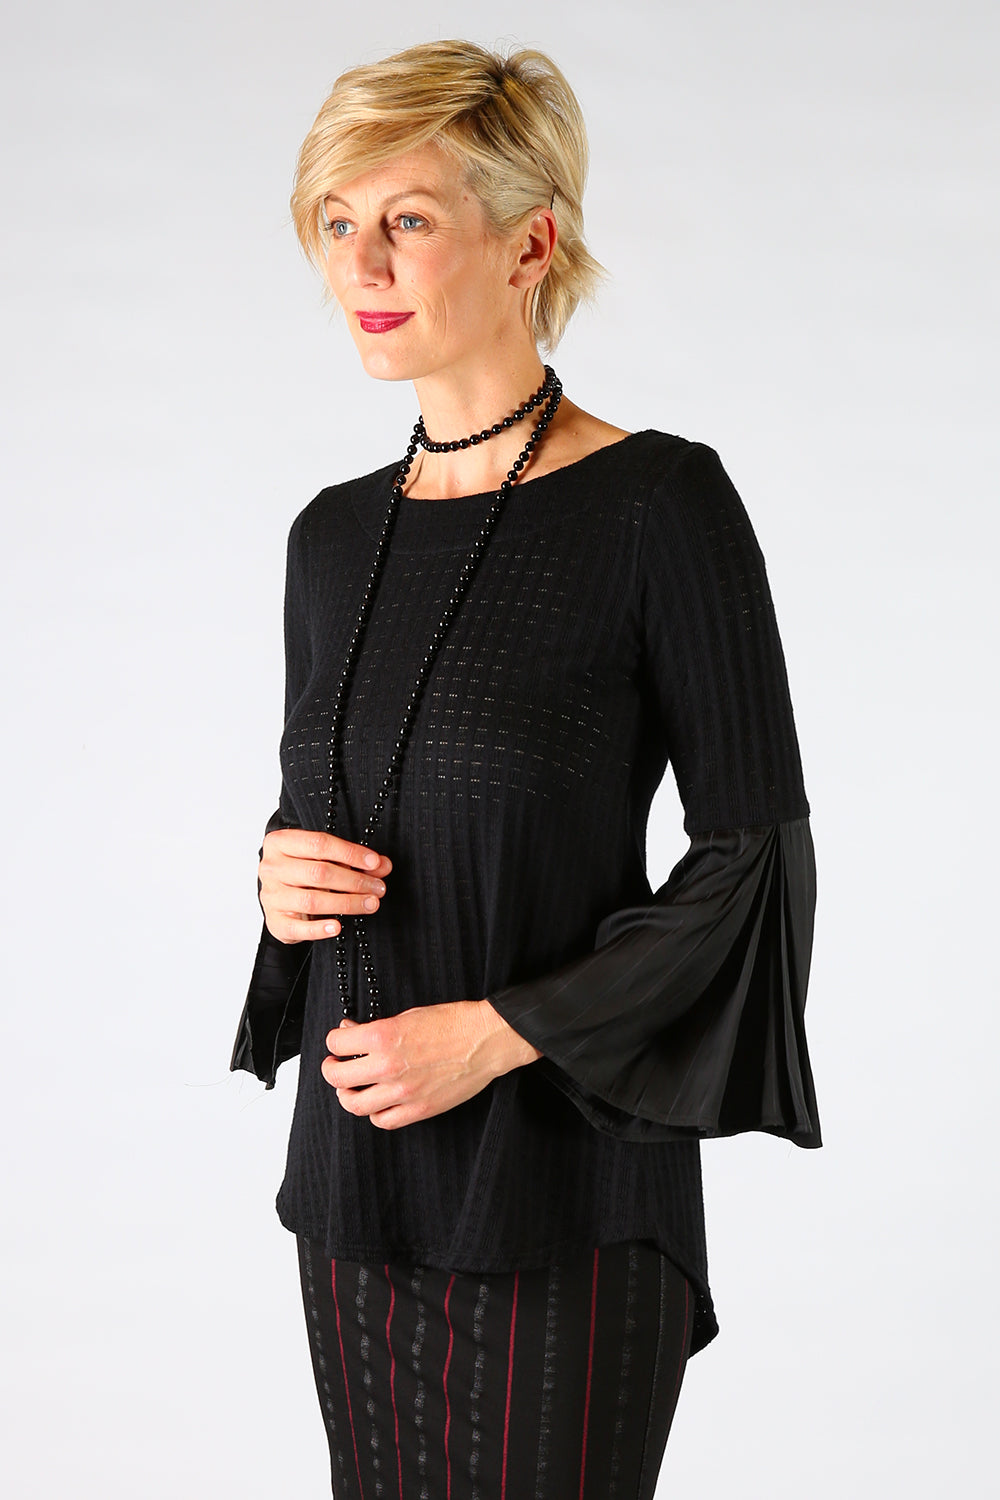 Aleshia Top, Annah Stretton AW19, Flare Sleeve Black Knit Top, Shot on Model